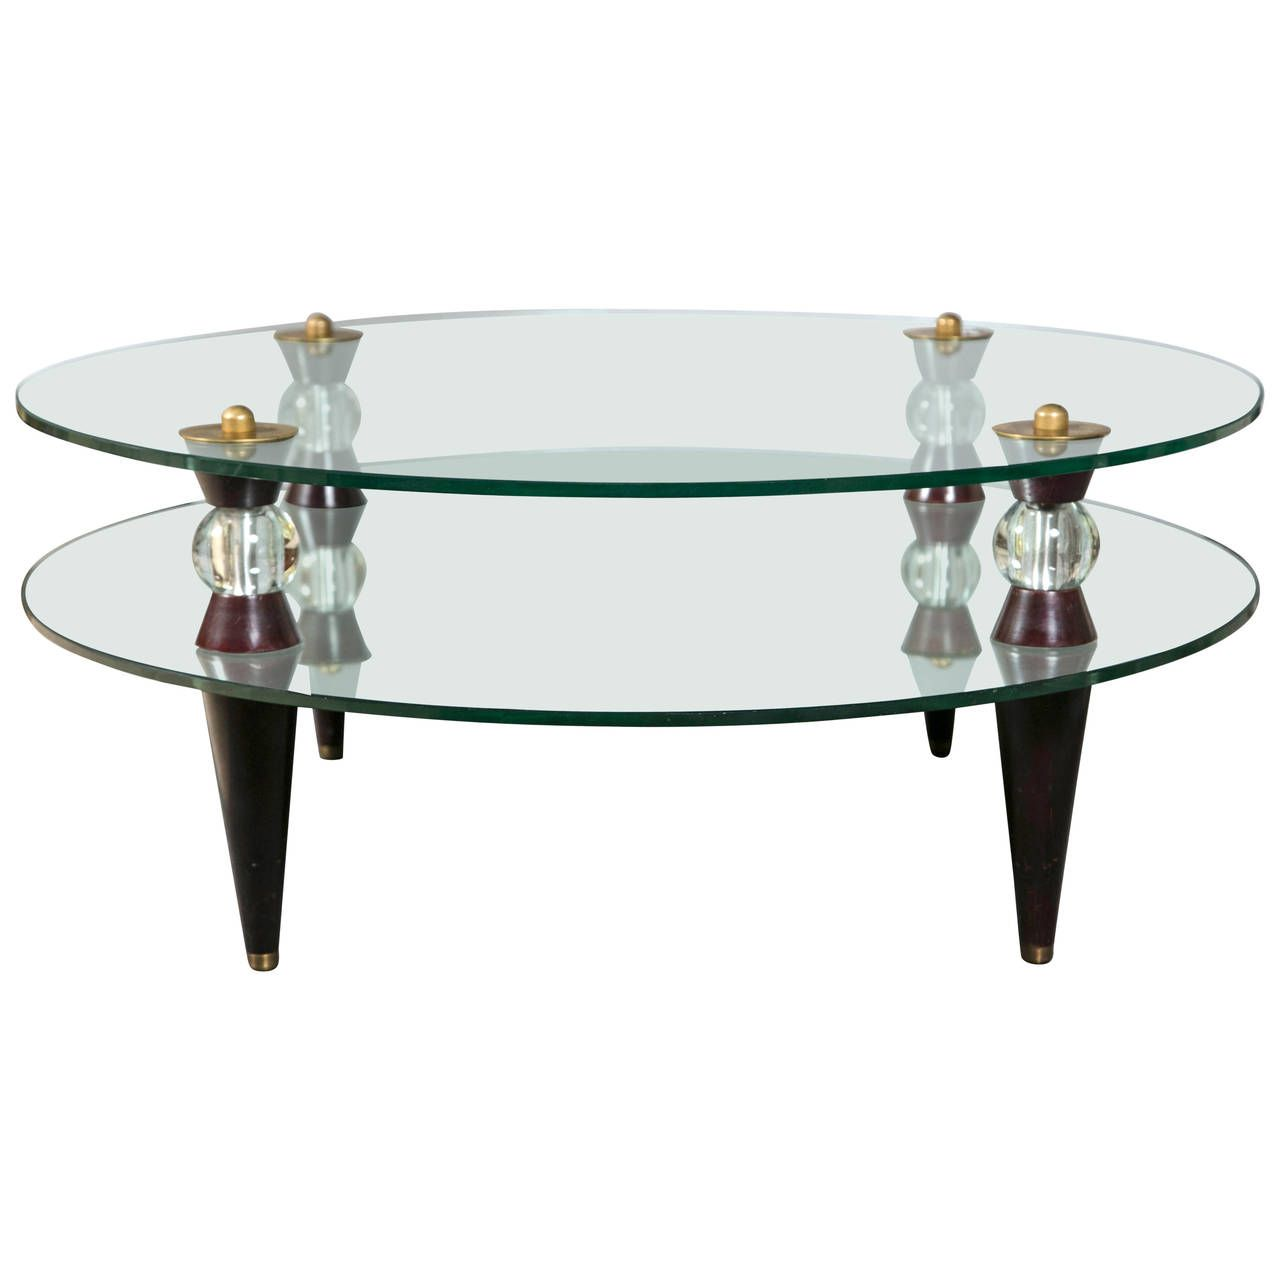 Art deco glass and mirror coffee table midcentury modern